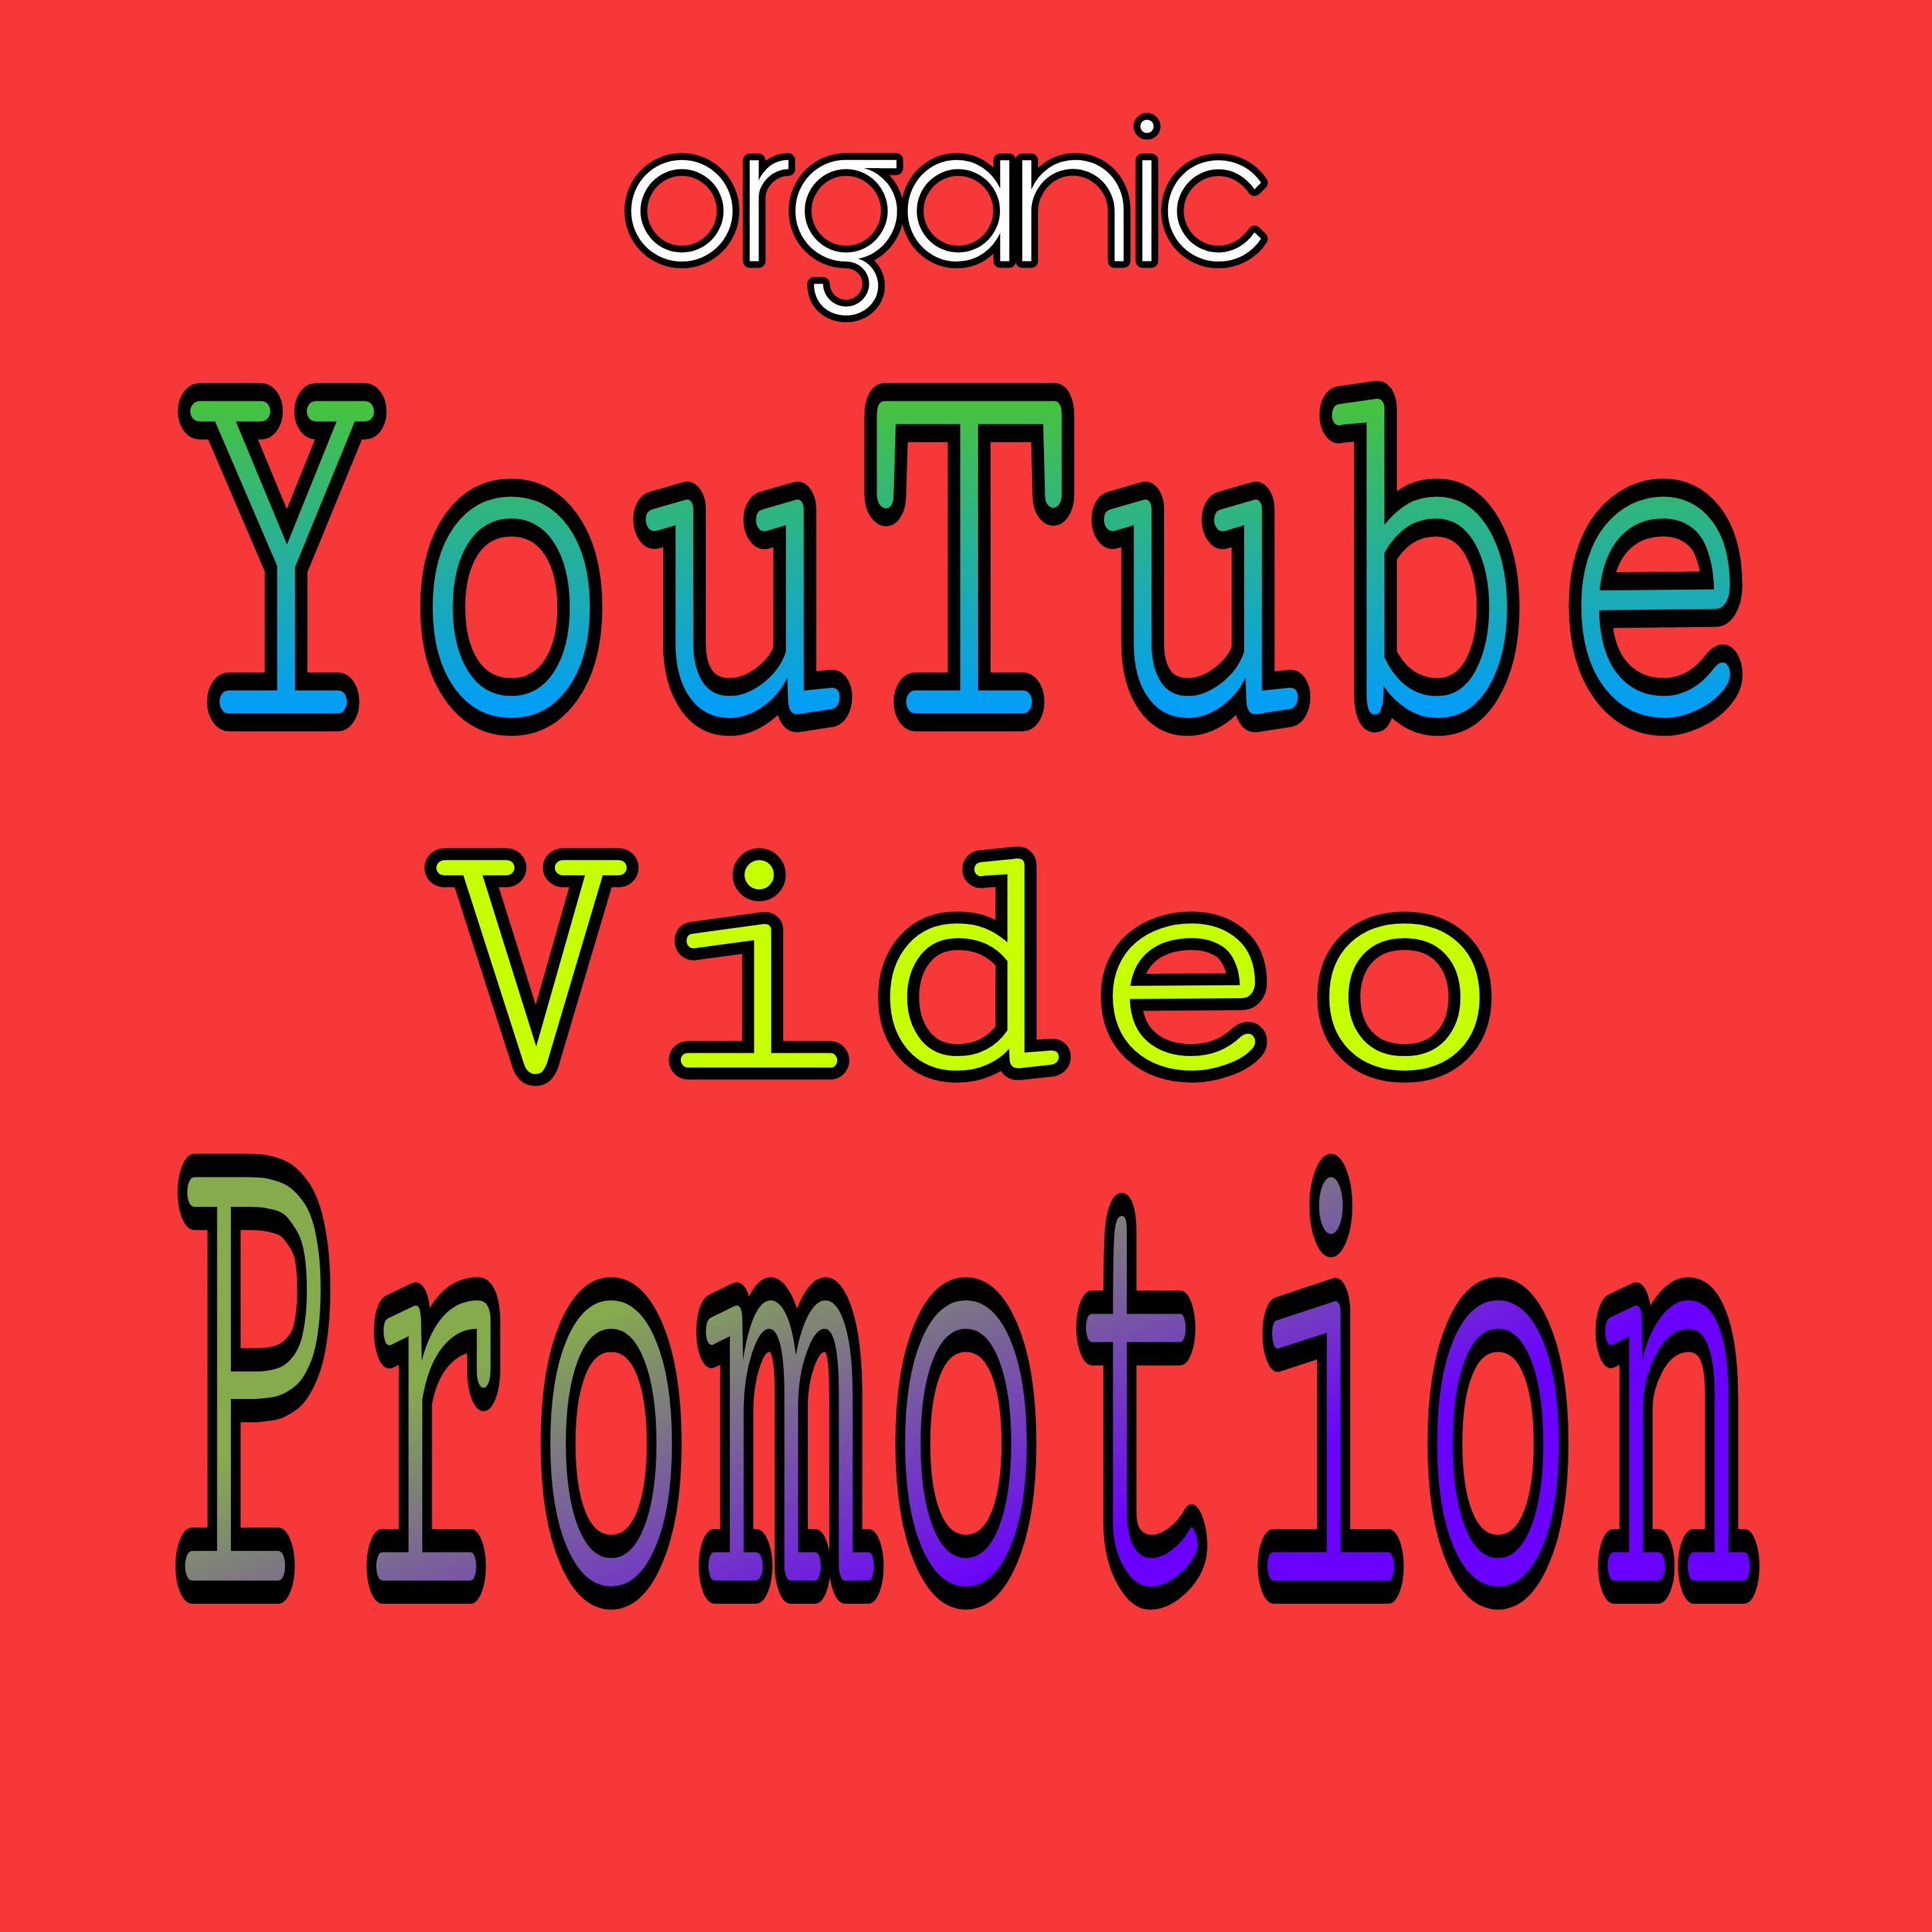 Get YouTube Video Promotion and Social Media Marketplace